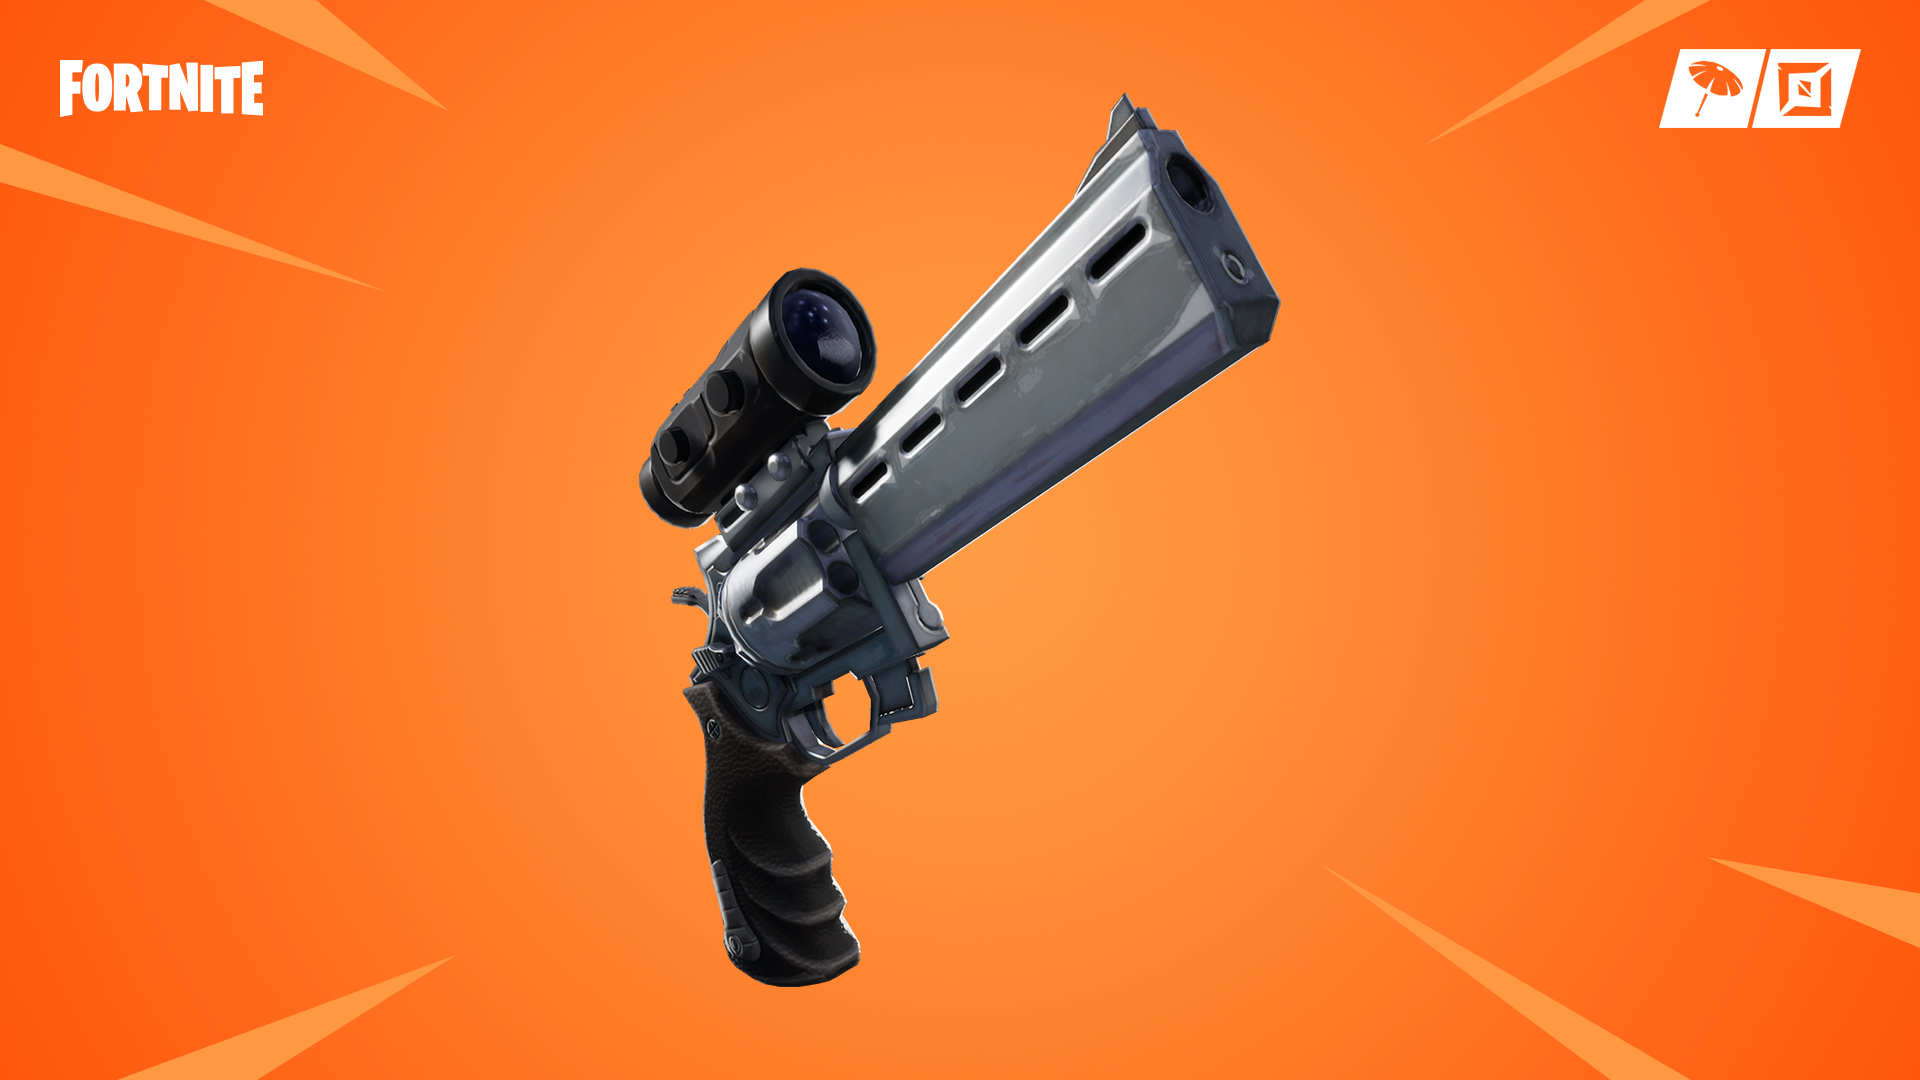 Fortnite patch v7 20 fixes some of the game's most annoying